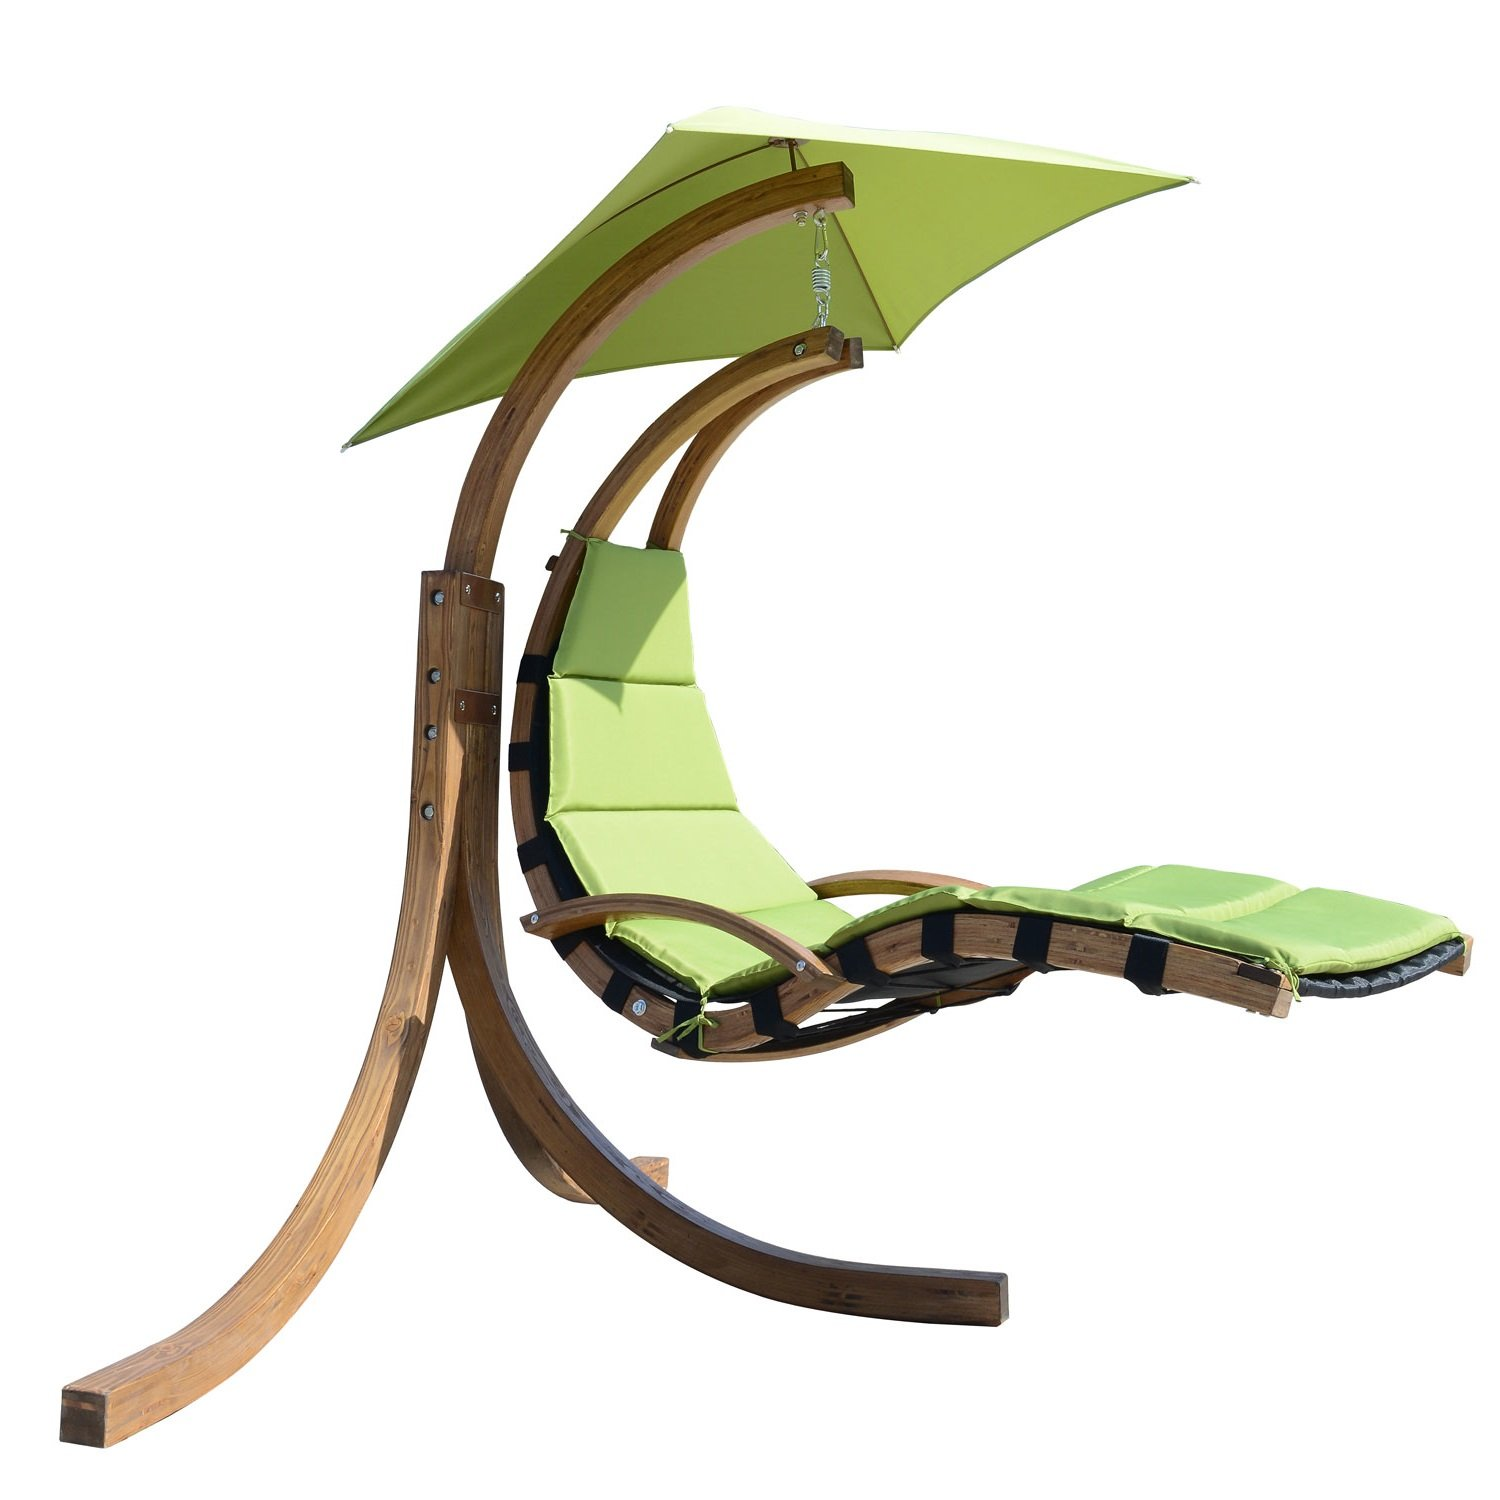 Amazon.com : Outsunny Outdoor Hanging Sky Swing Chair With Stand, Green :  Garden U0026 Outdoor